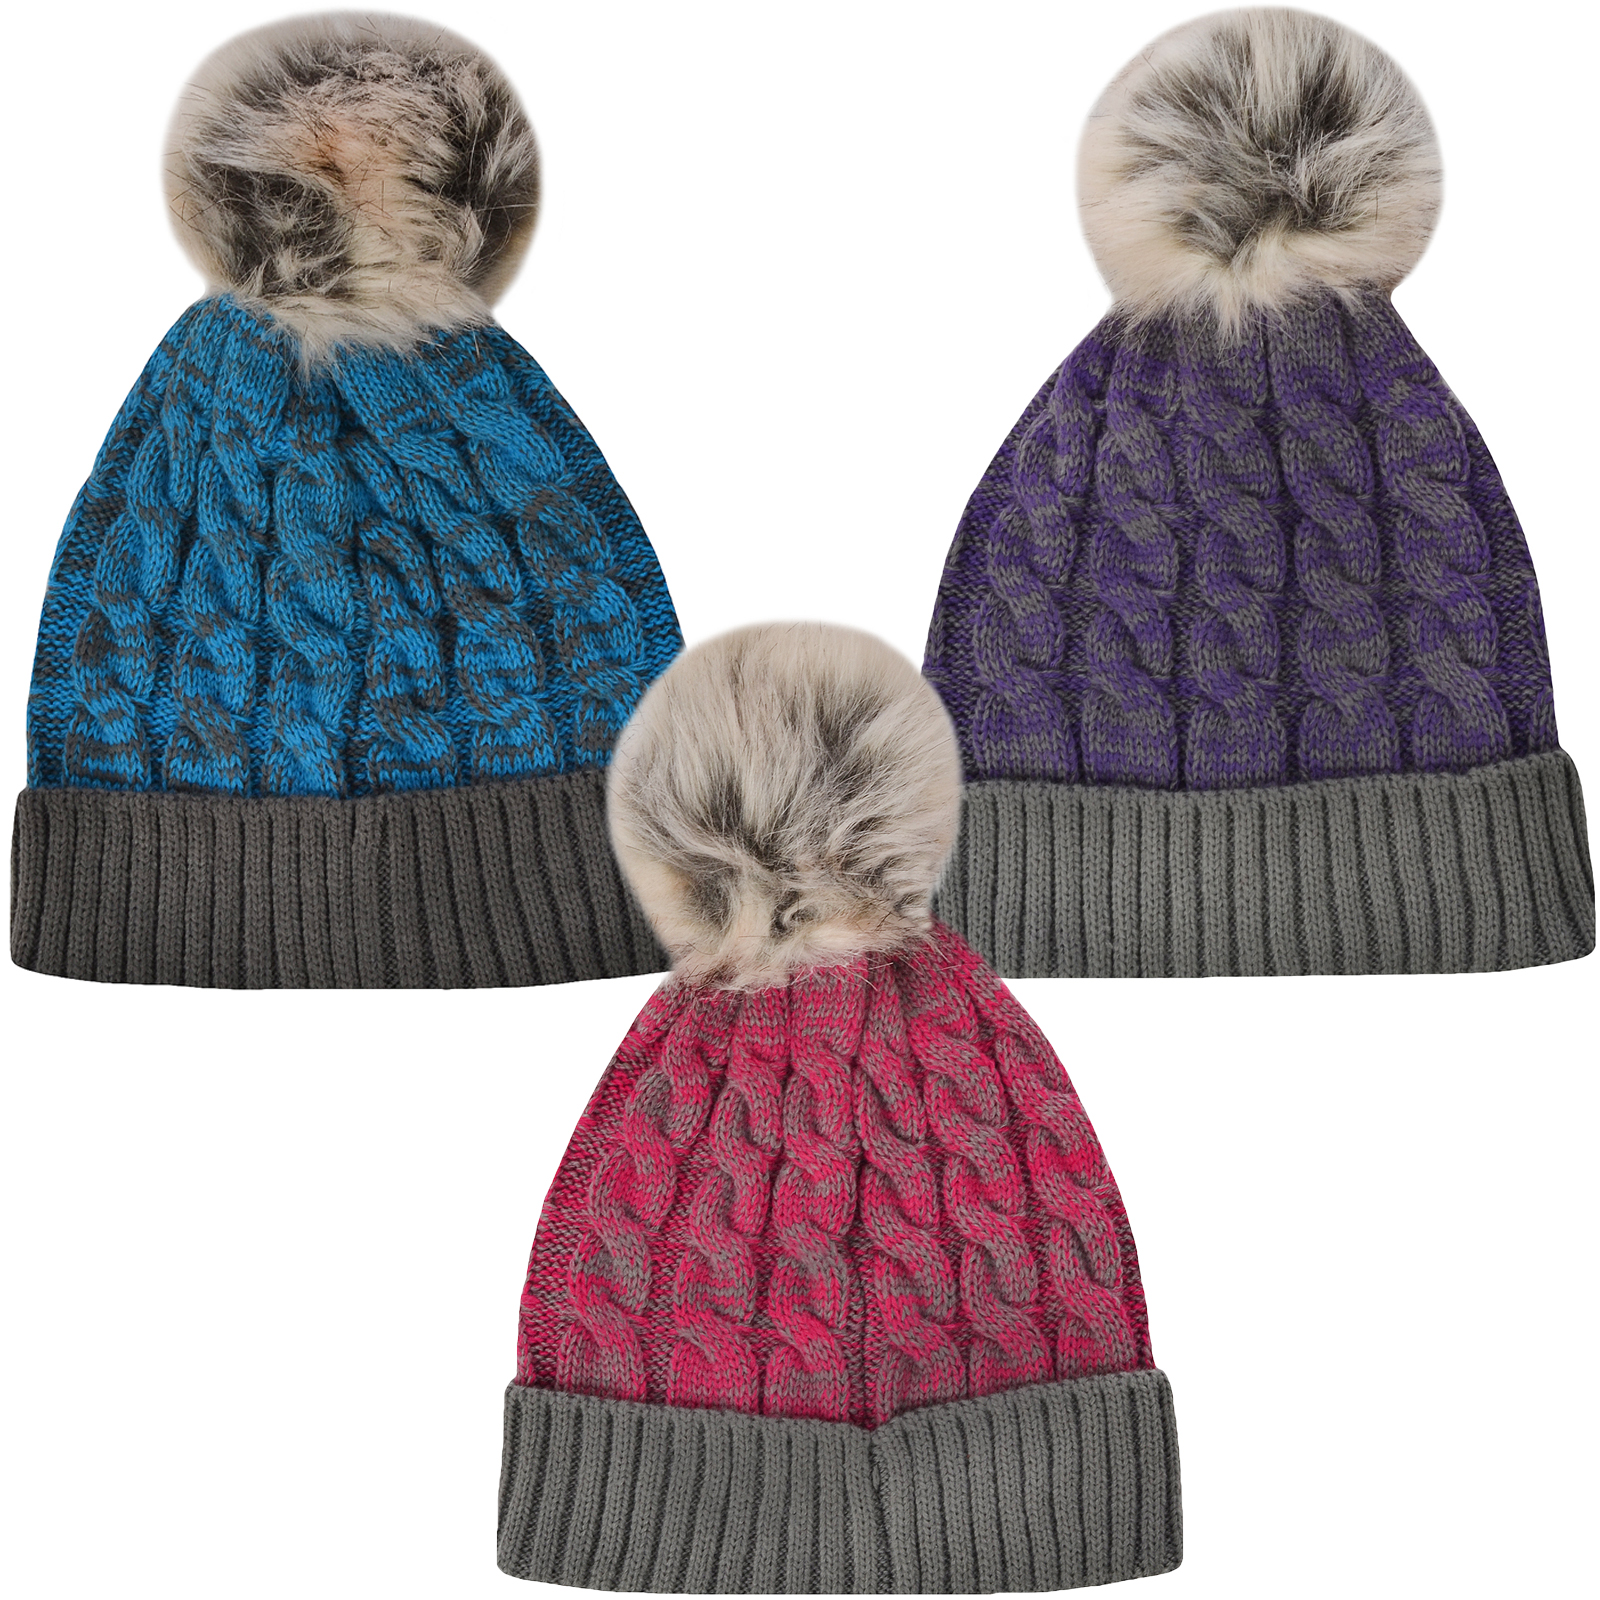 Womens Cable Knitted Winter Ladies DIAMANTE Faux Fur Pom Pom Bobble Beanie Hat